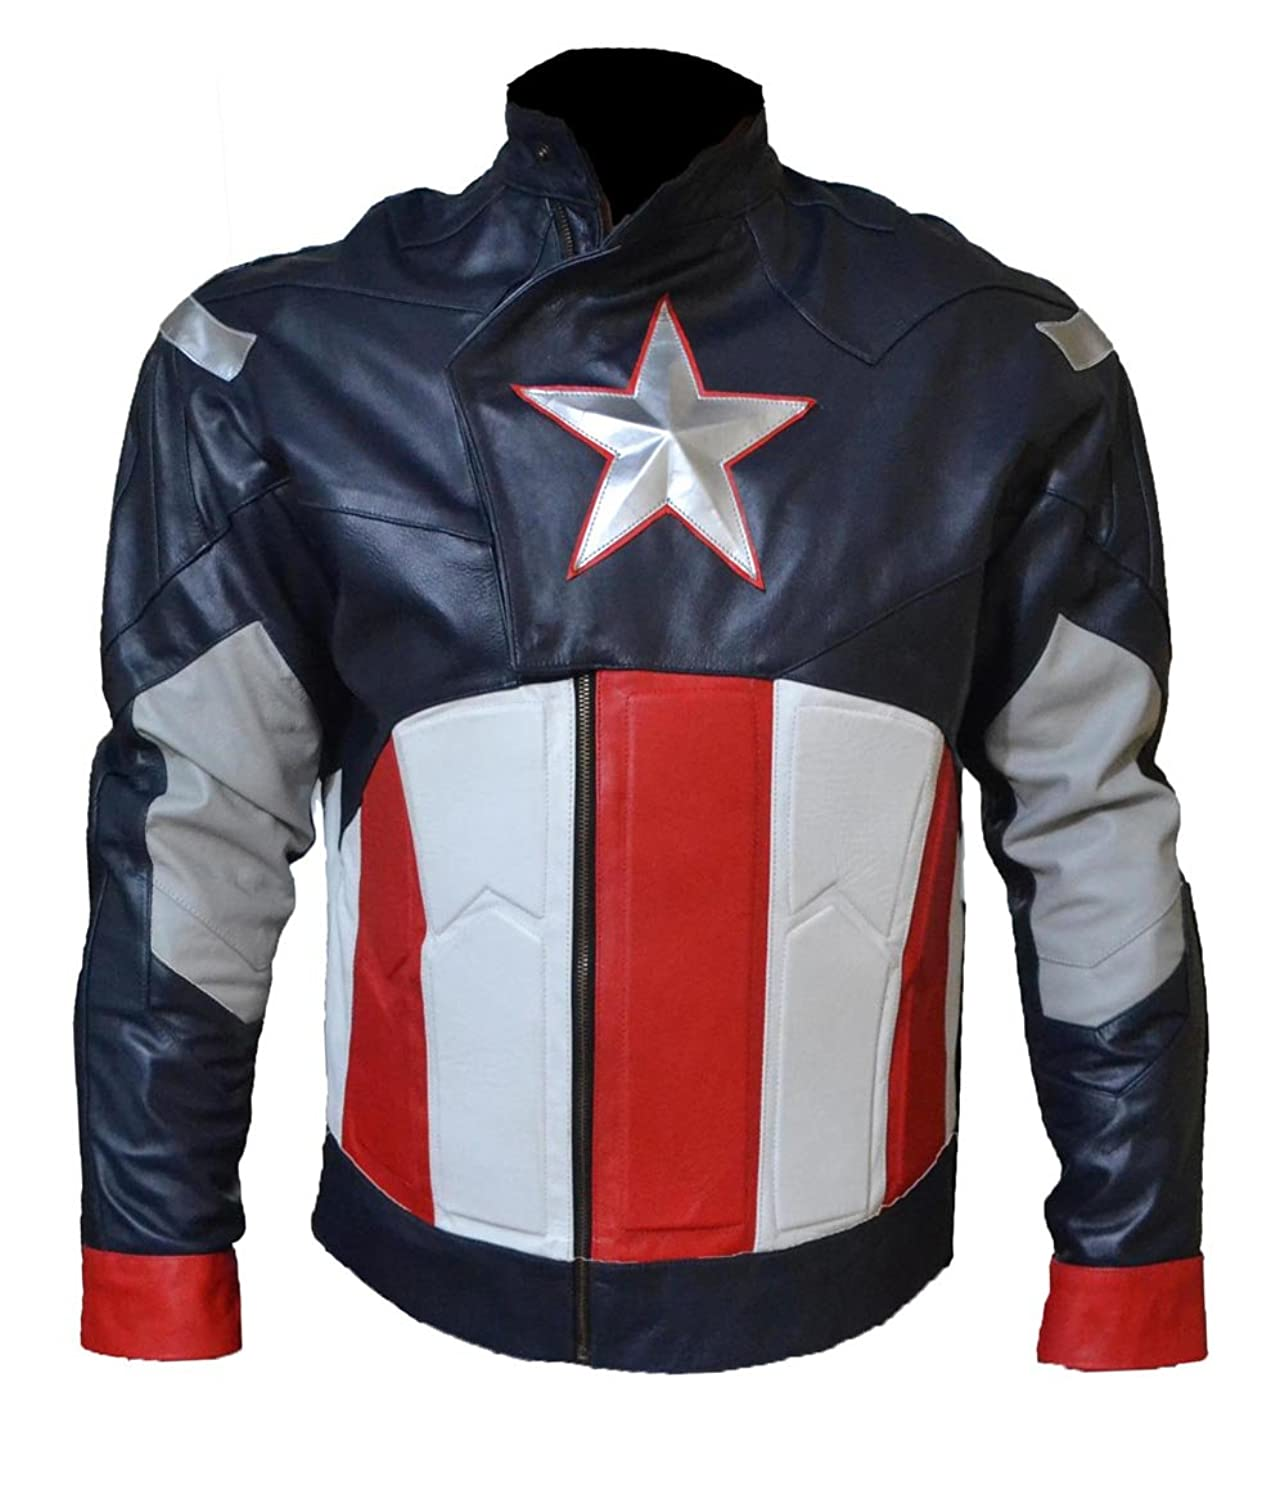 Men's Captain America Avengers Real Leather Biker Jacket - DeluxeAdultCostumes.com